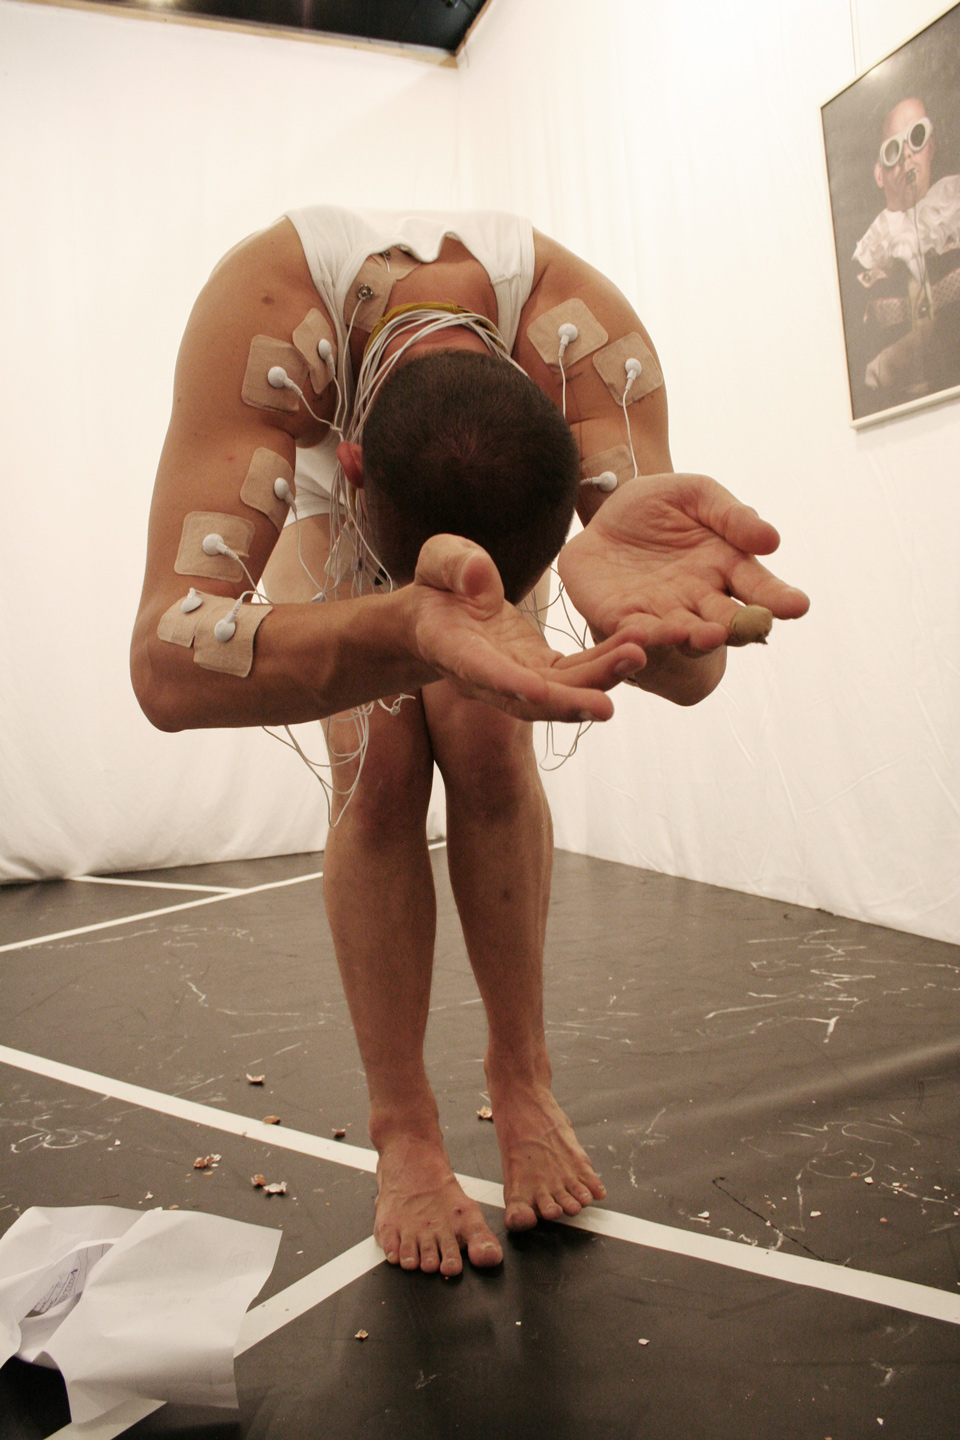 The Performer (Georg Hobmeier) with electrodes